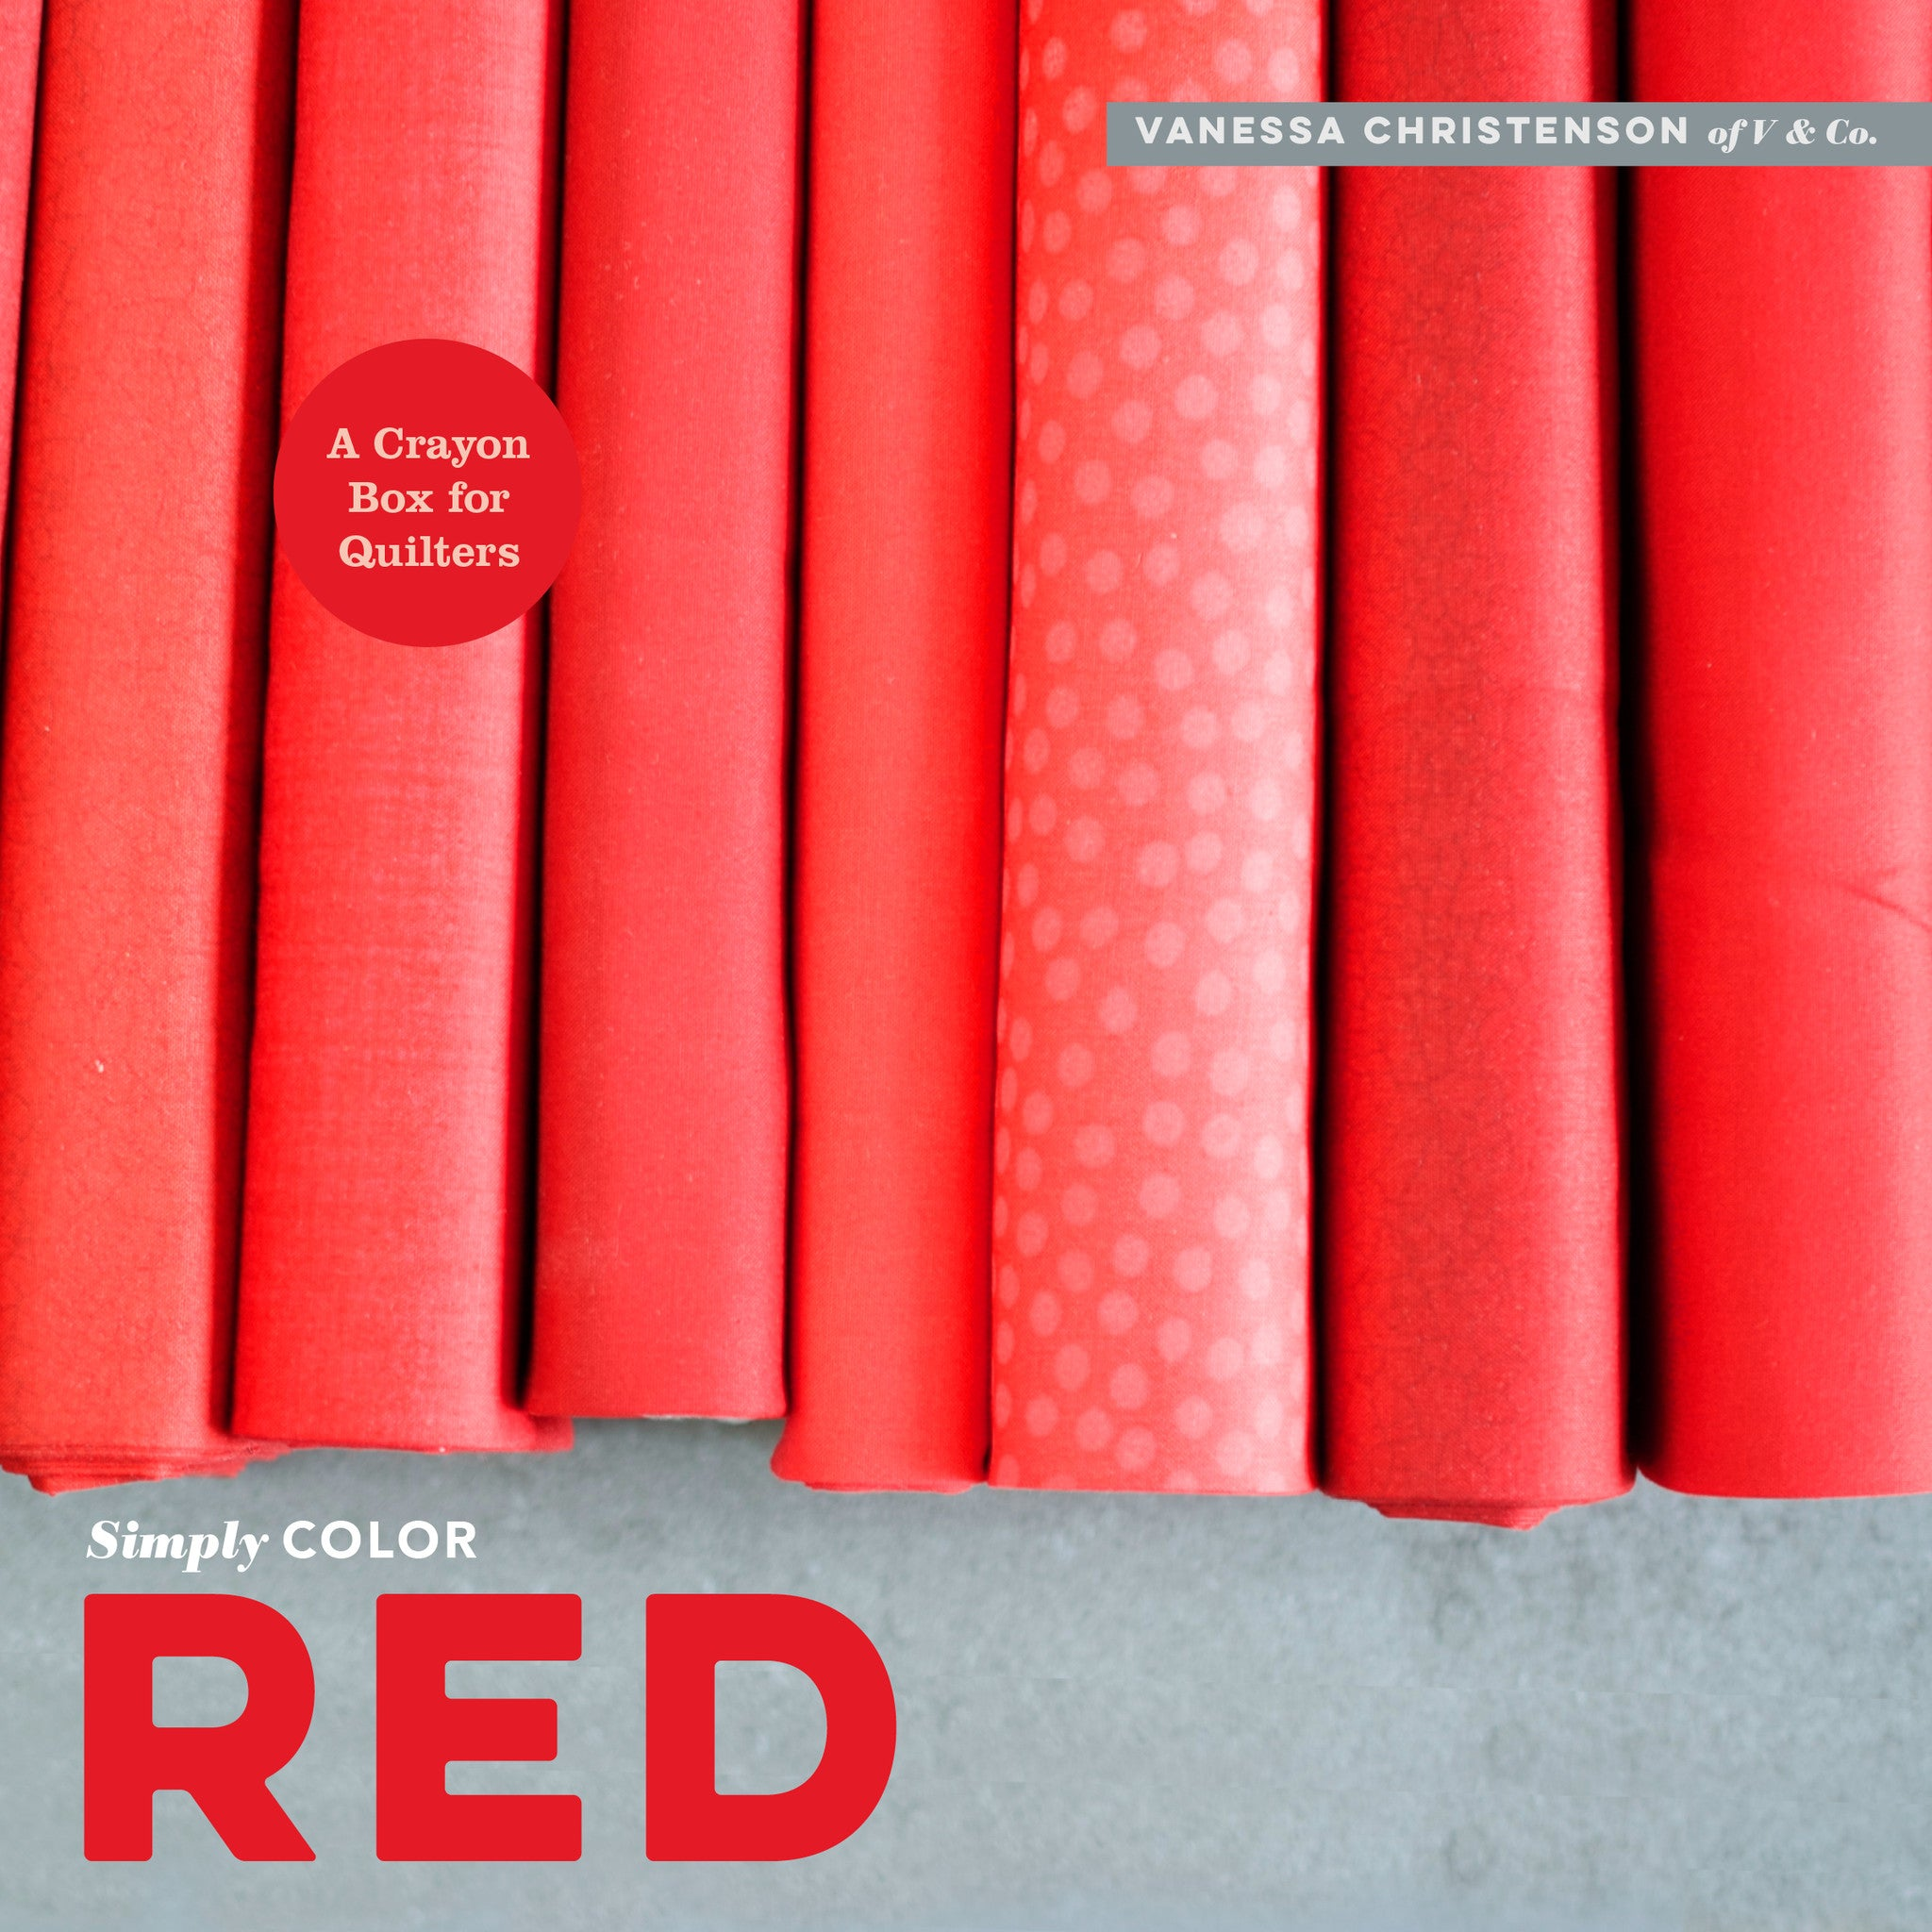 Book about color red - Simply color red